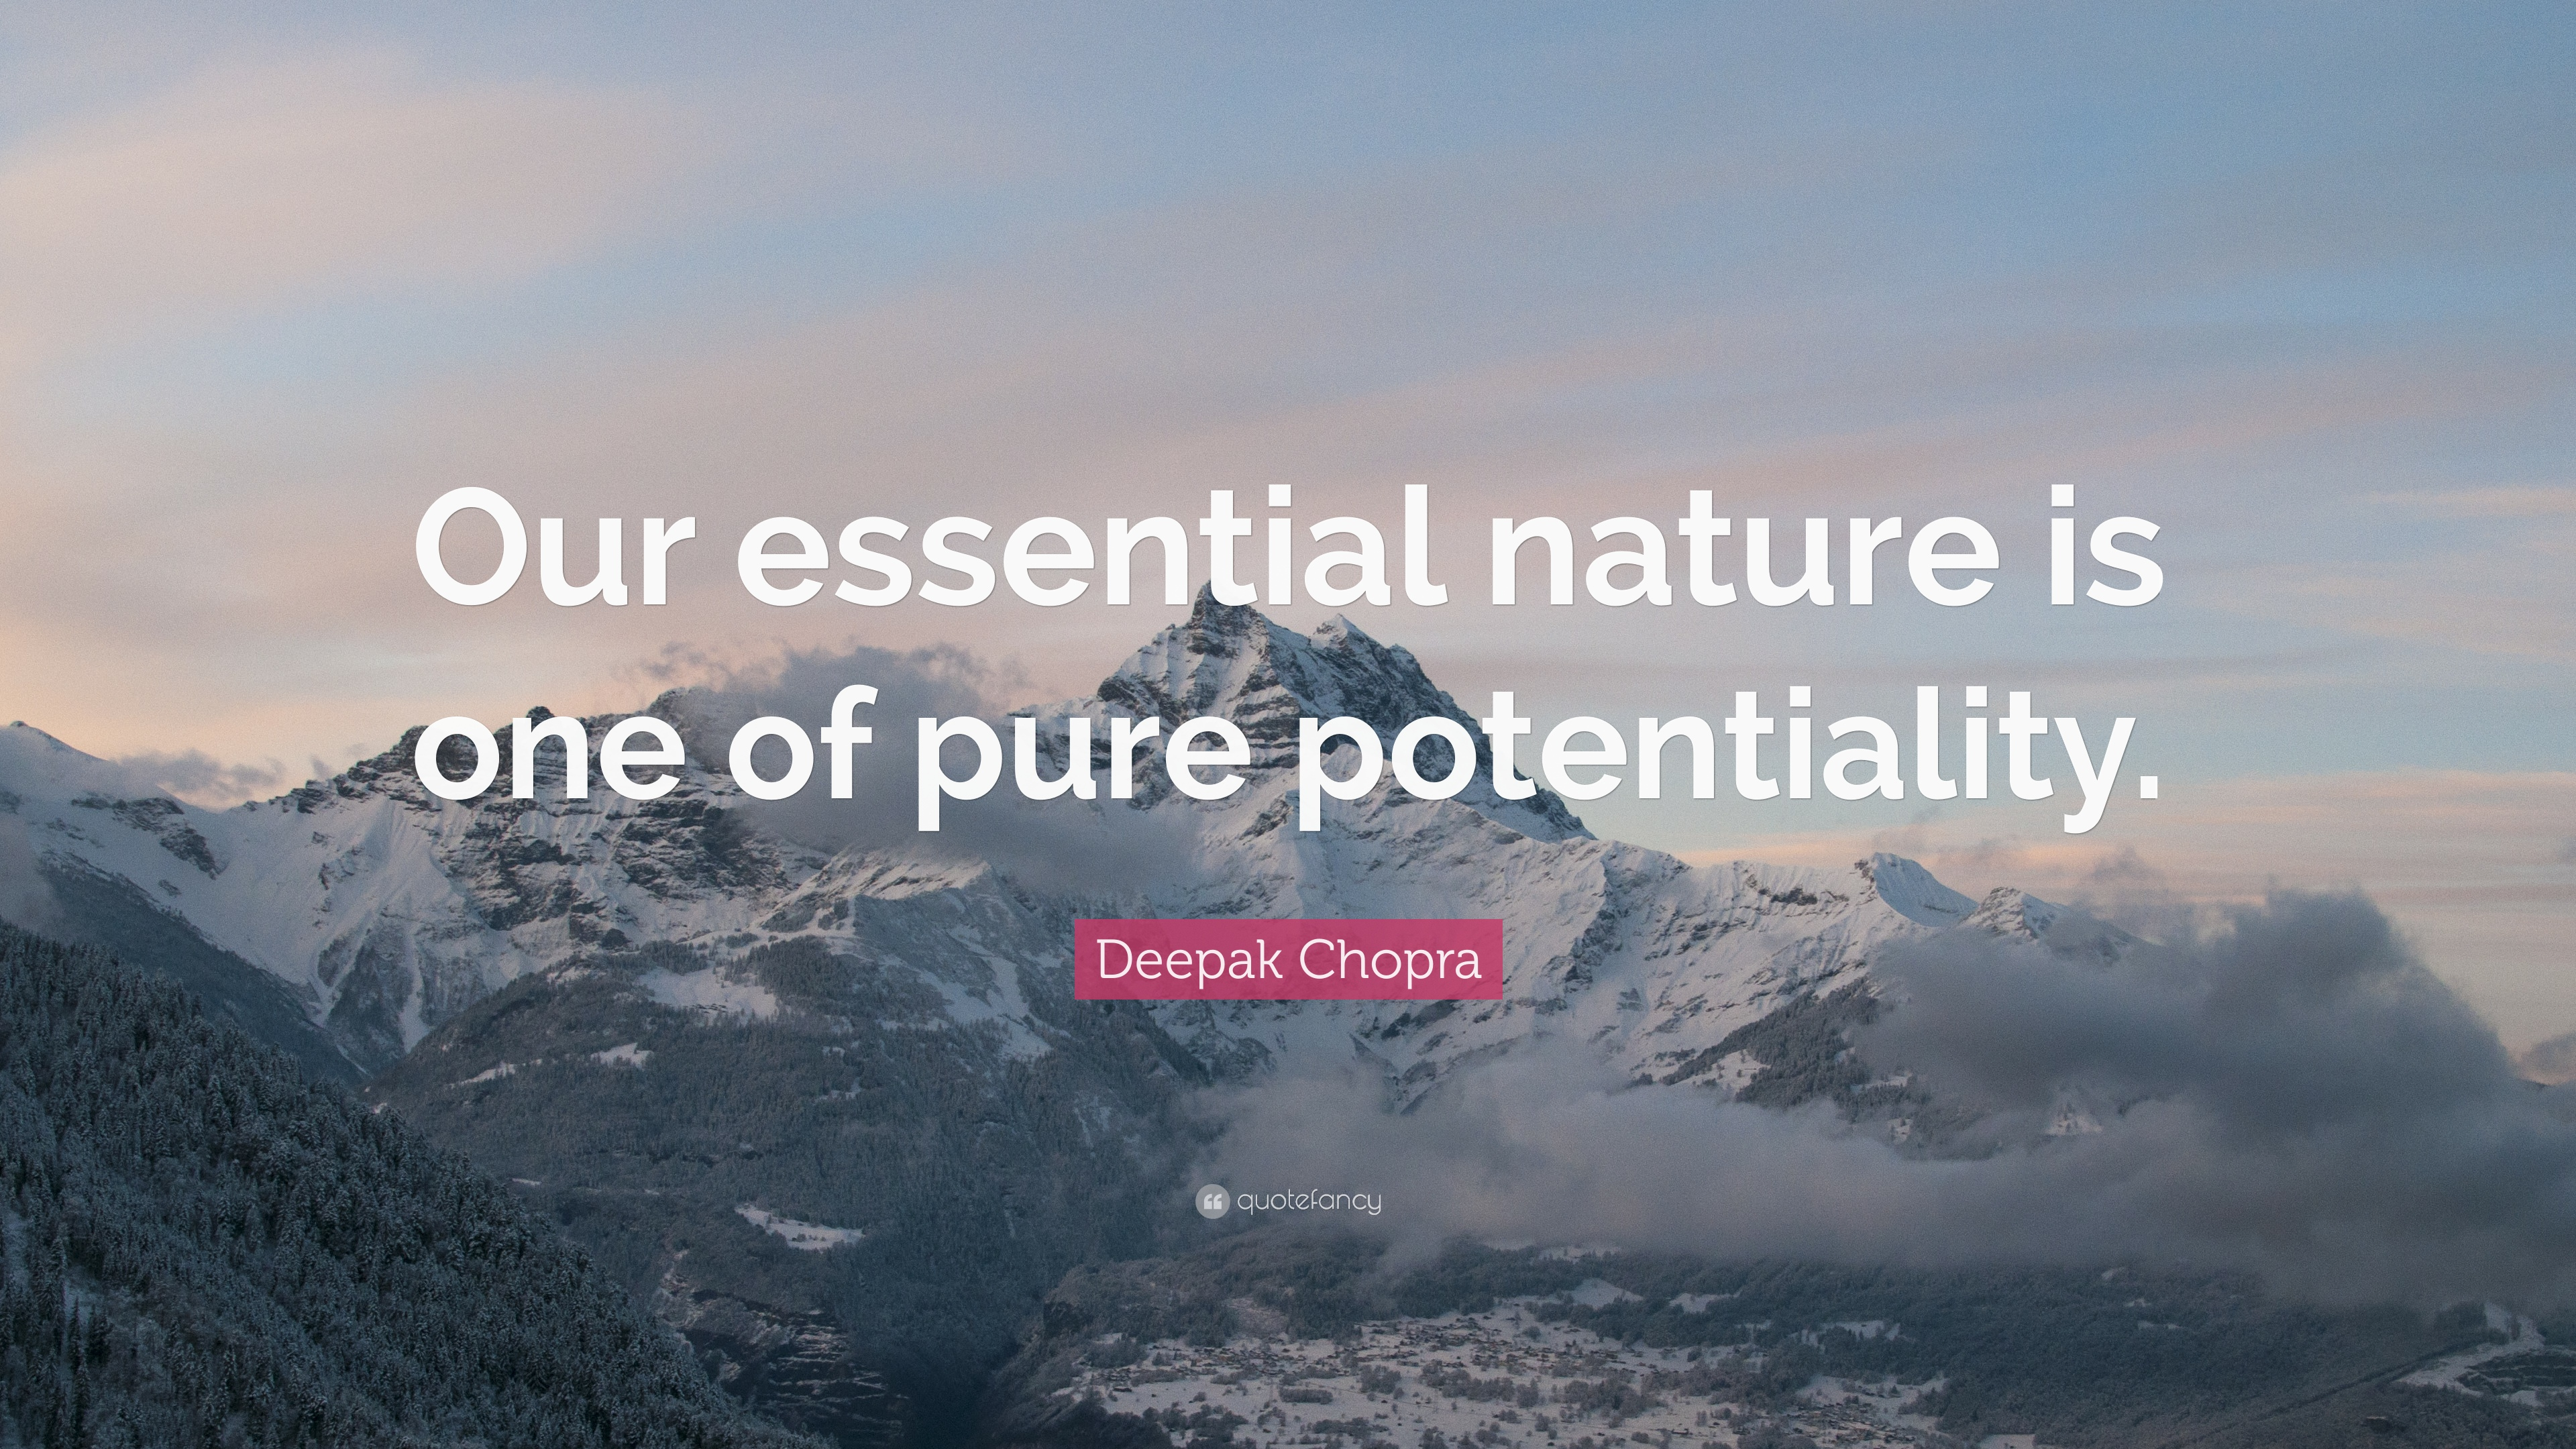 Self Improvement Quotes Our Essential Nature Is One Of Pure Potentiality